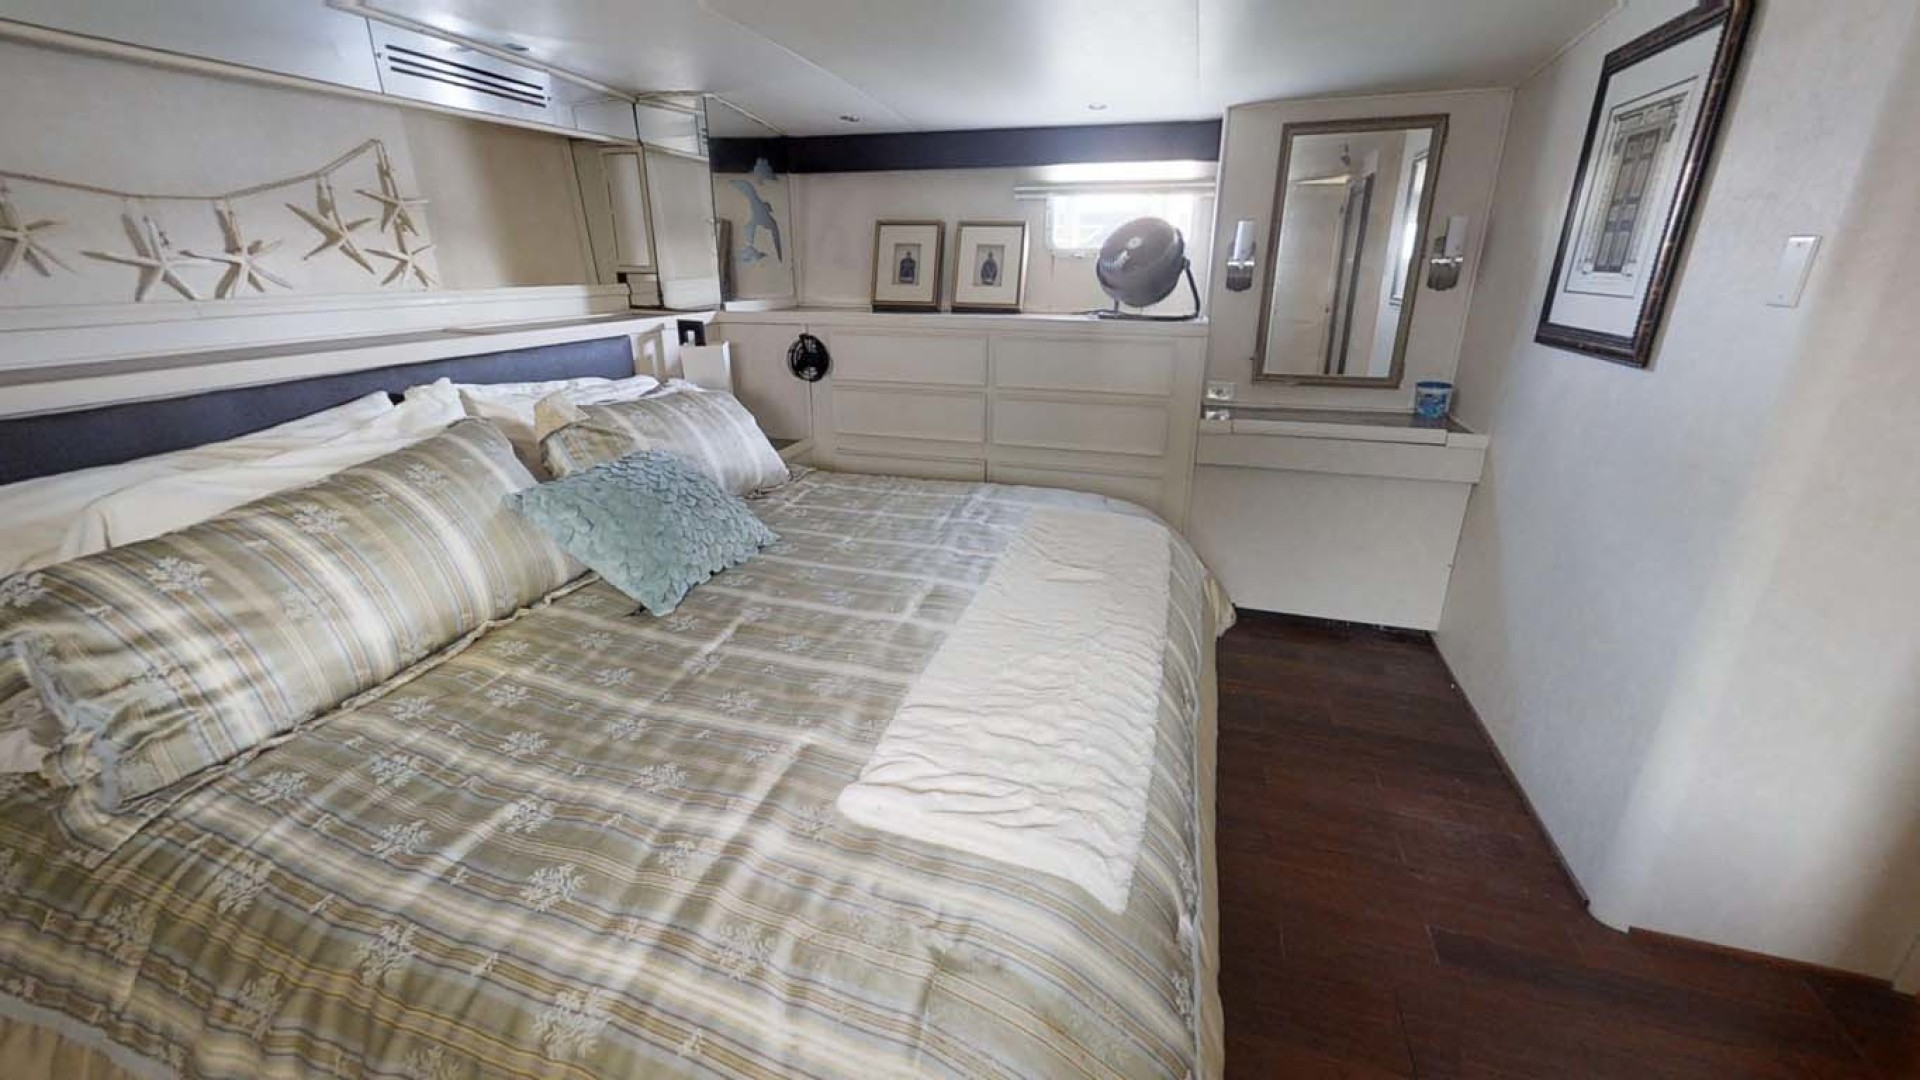 Hatteras-74 Motor Yacht 1981-Pleasurizer Fort Pierce-Florida-United States-Master Stateroom-1122259 | Thumbnail